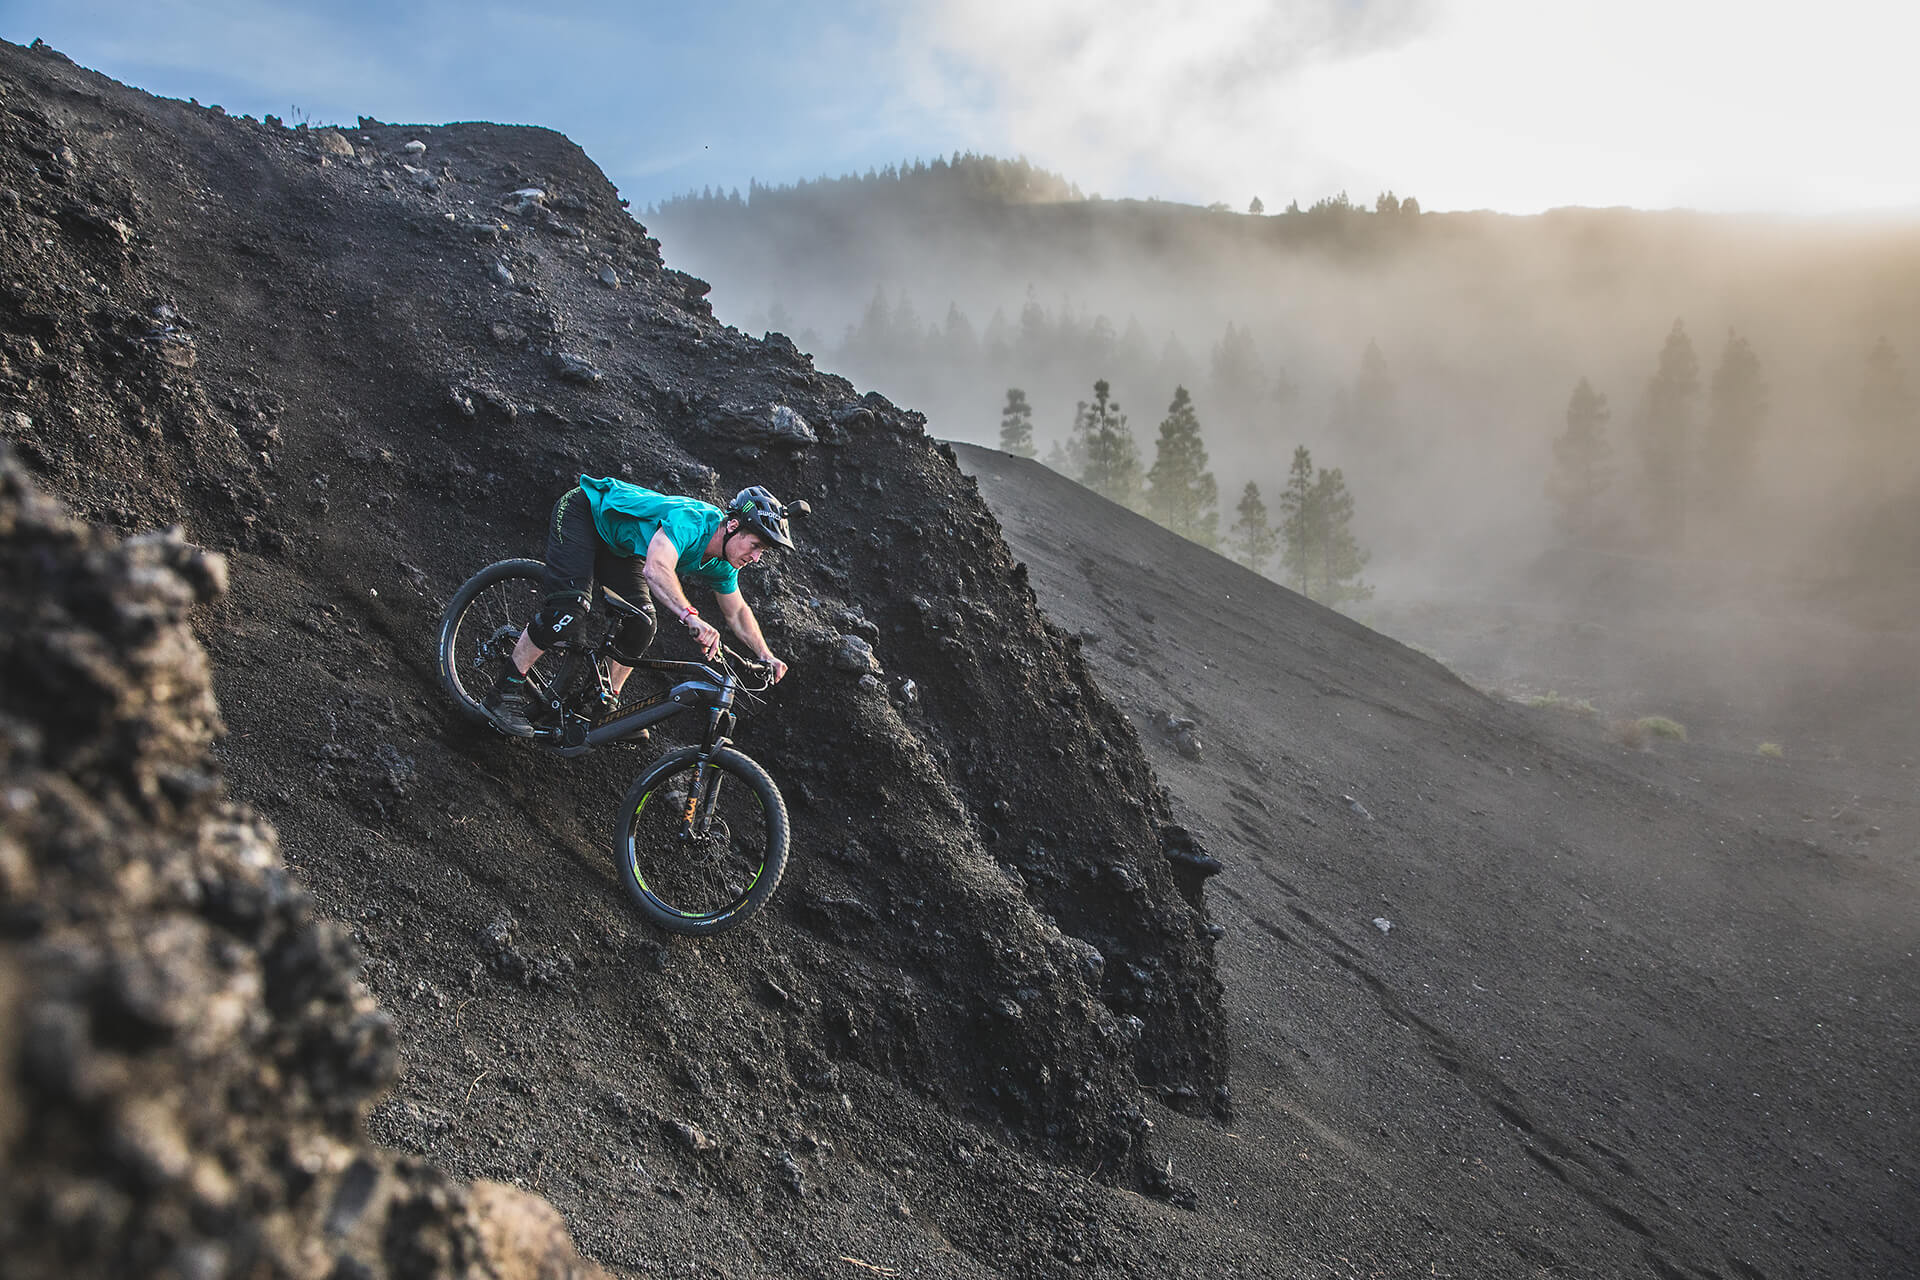 Haibike Hero Sam Pilgrim downhill riding